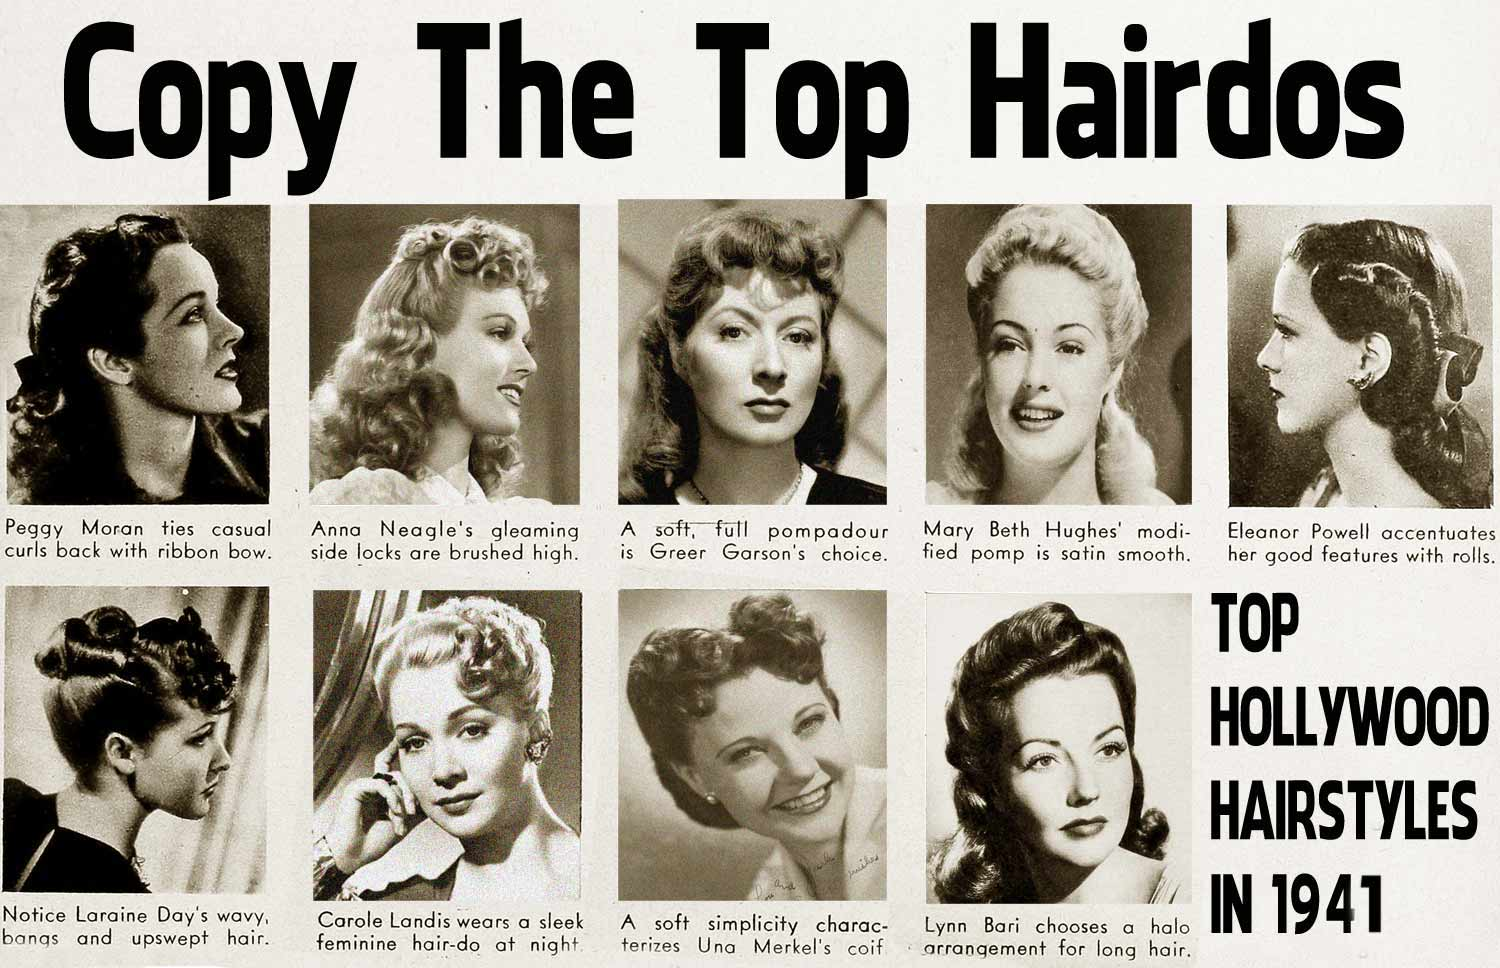 Groovy 1940S Hairstyle Copy The Top Hairdos Of 1941 Glamourdaze Hairstyles For Men Maxibearus